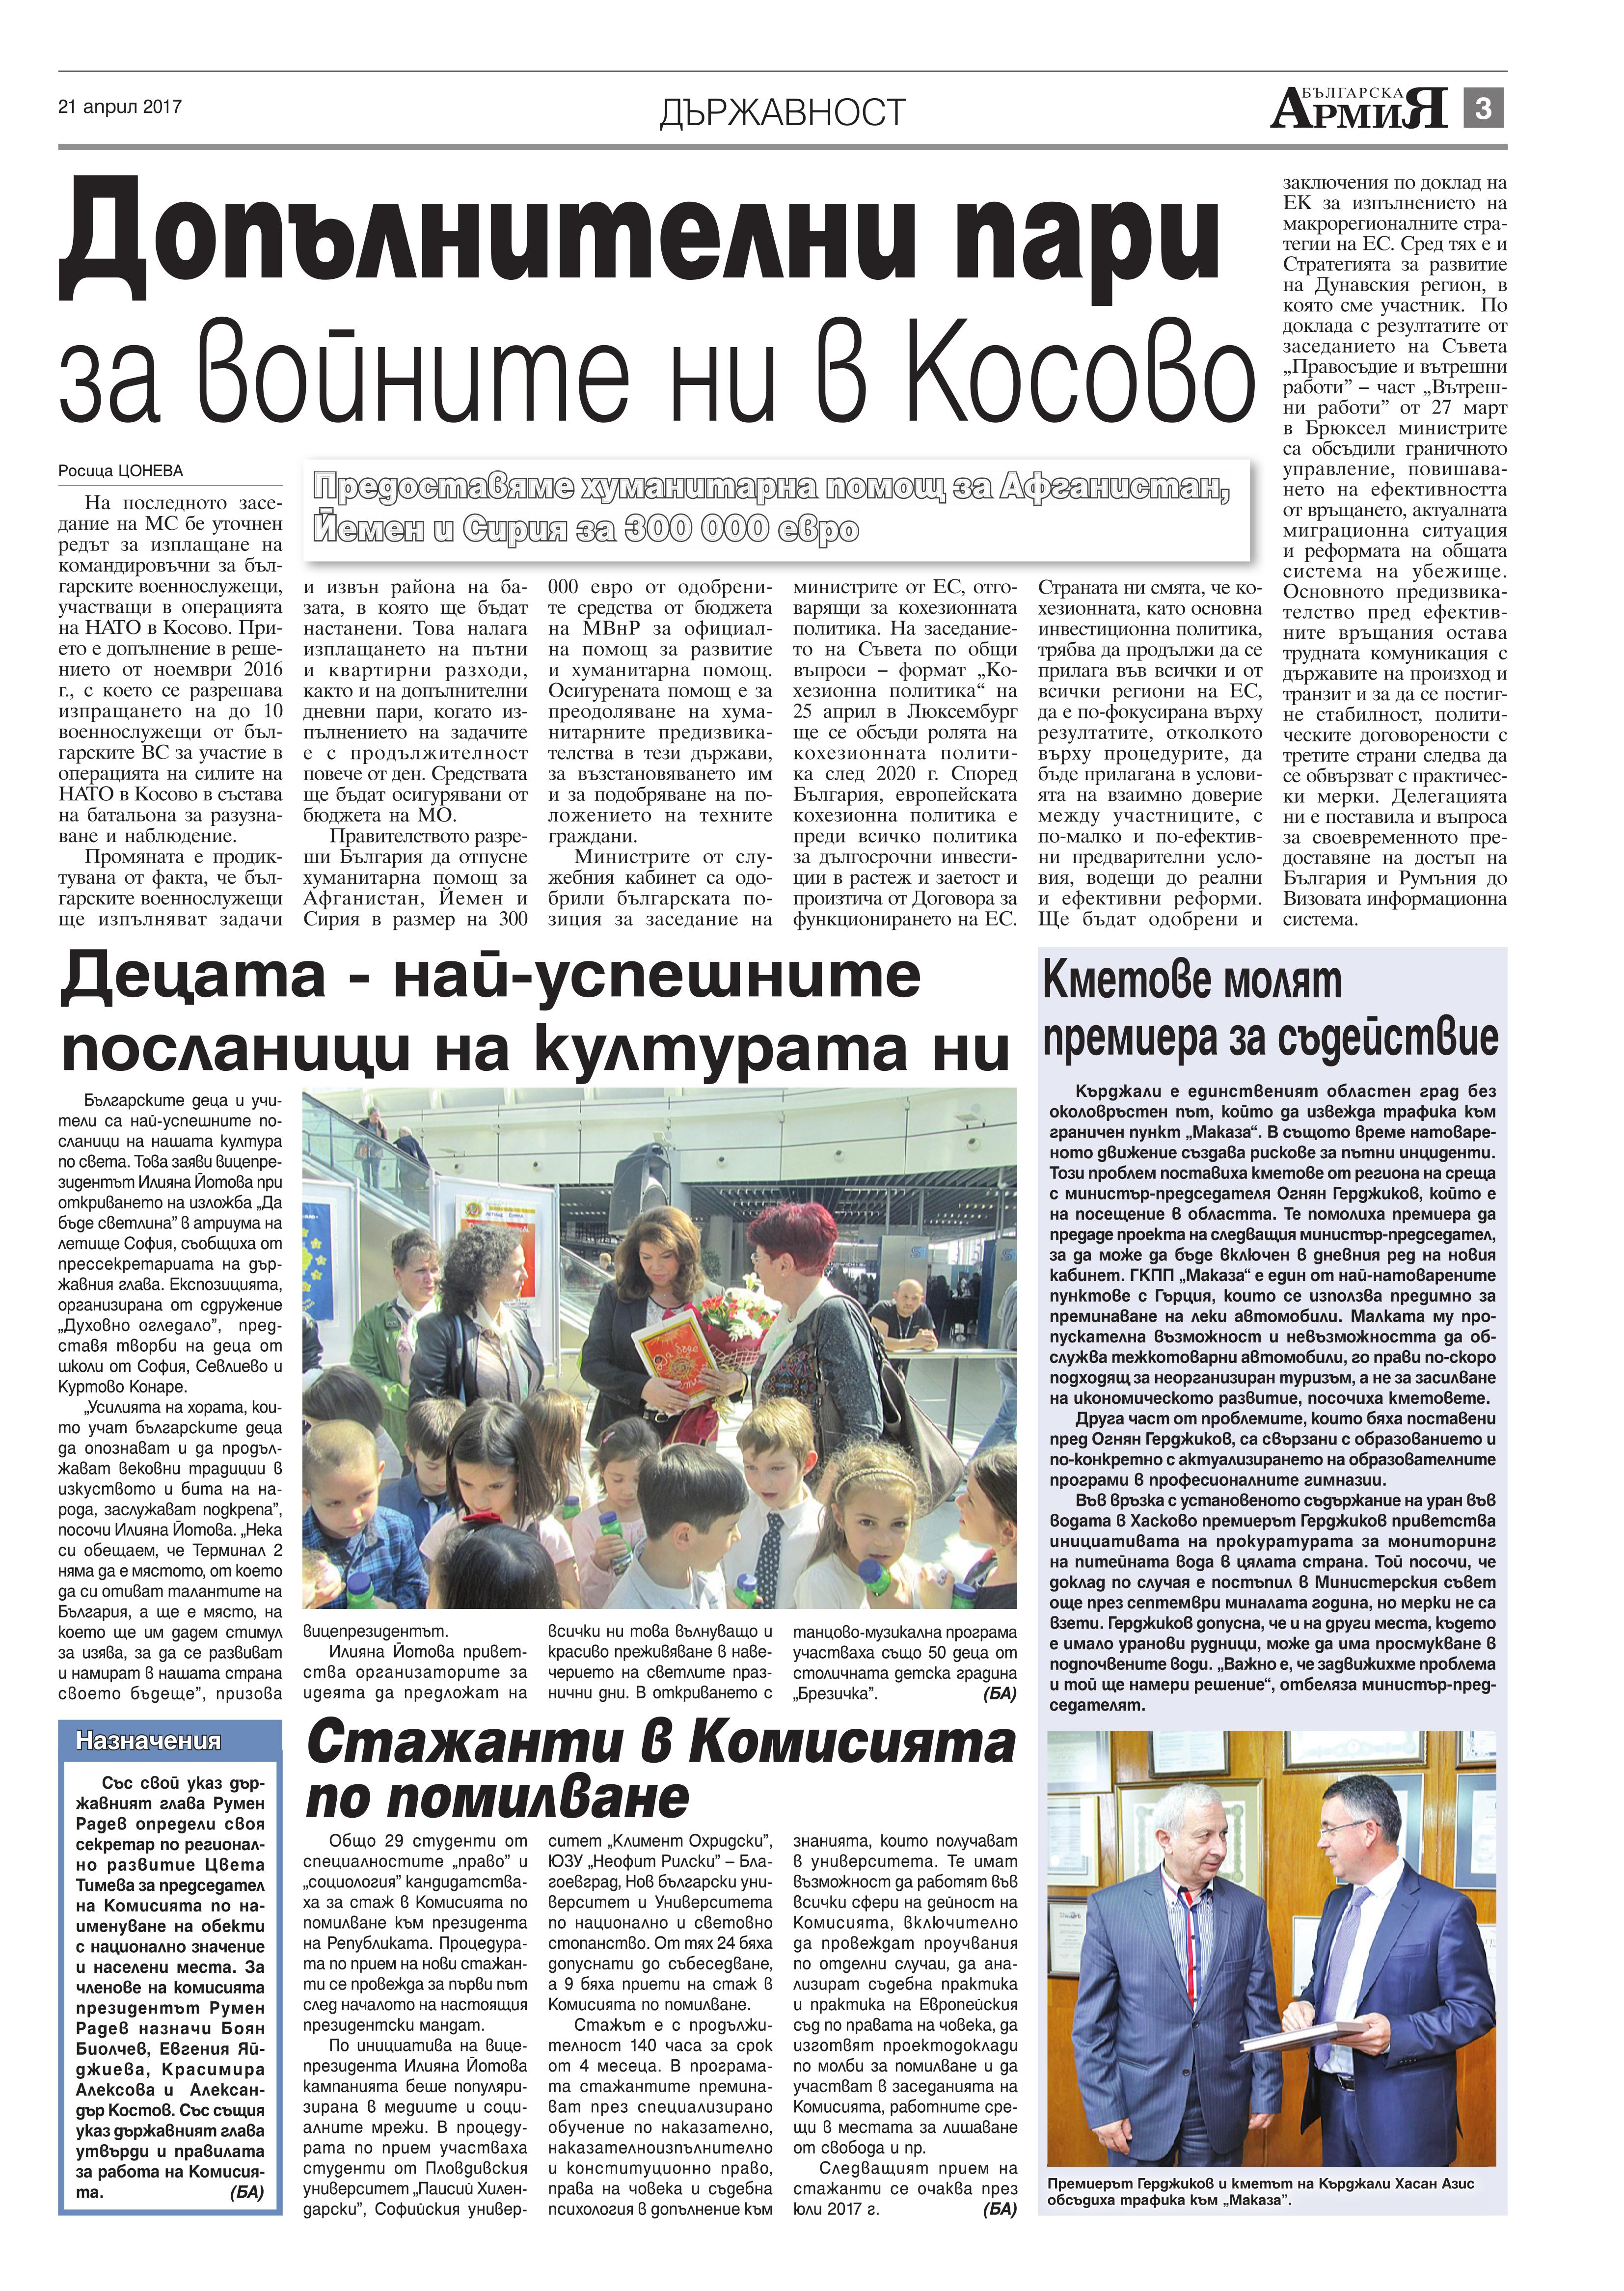 https://www.armymedia.bg/wp-content/uploads/2015/06/03.page1_-19.jpg